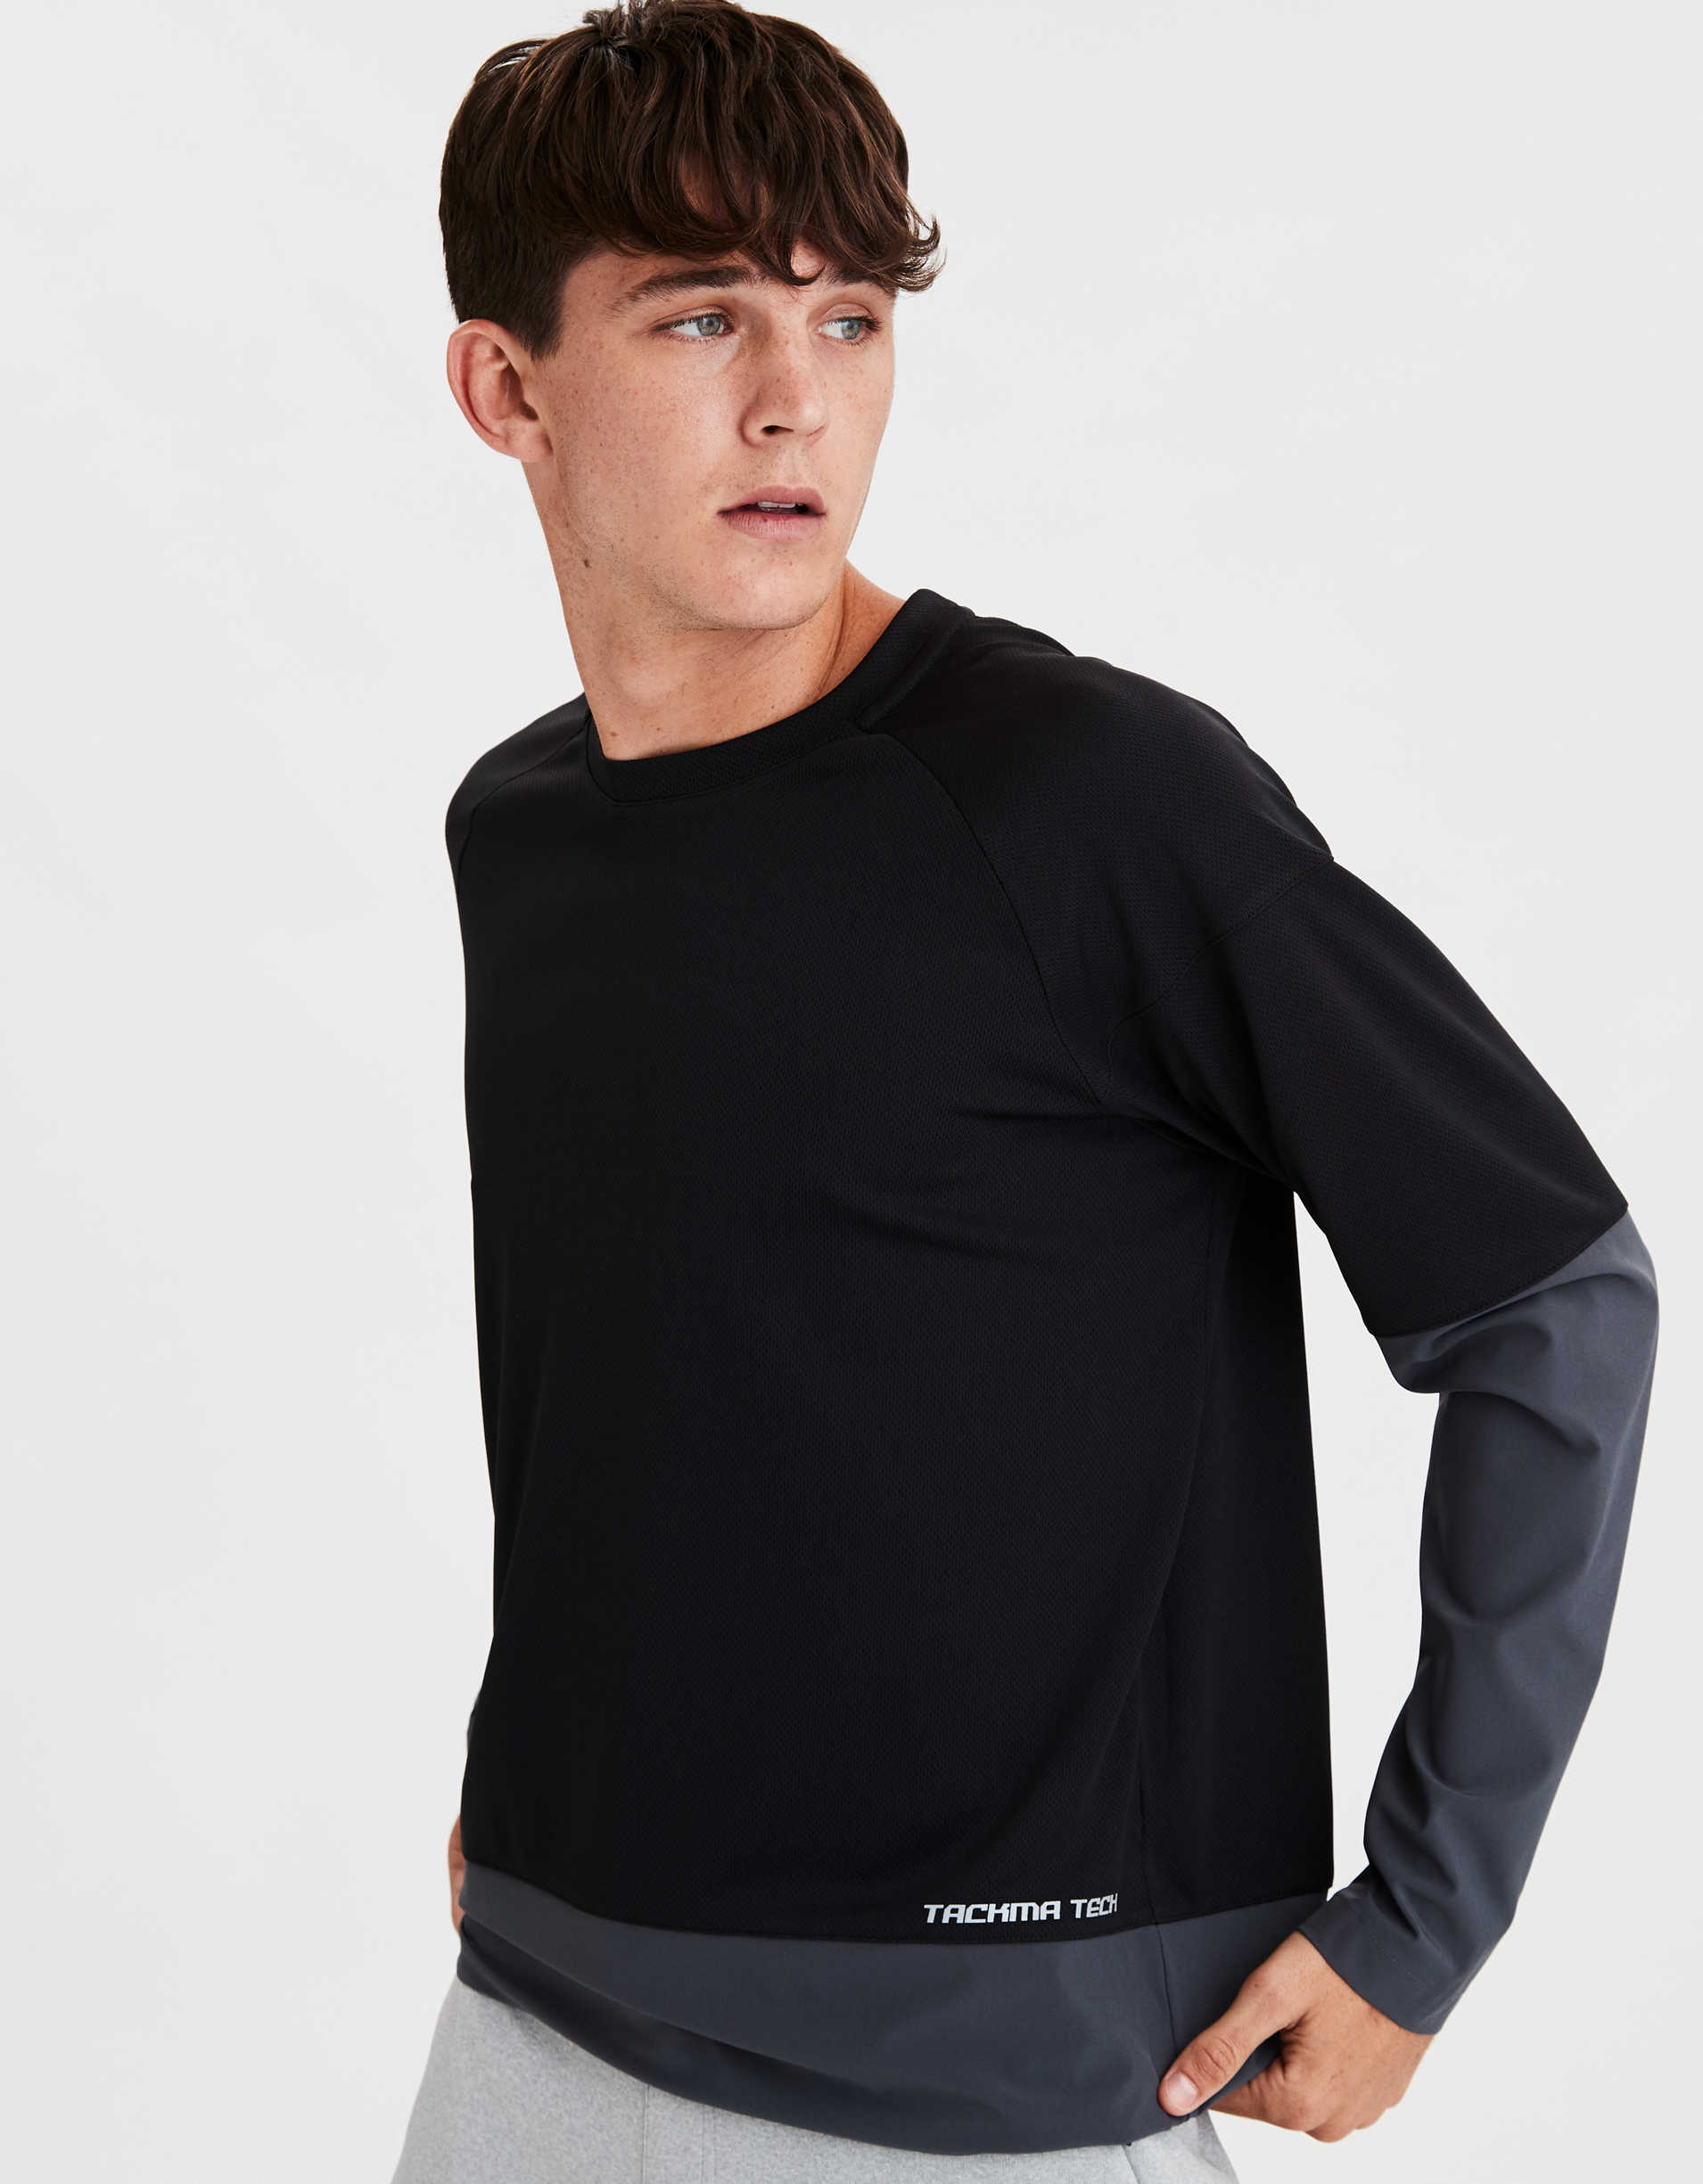 TACKMA Mixed Fabric Tech T-Shirt